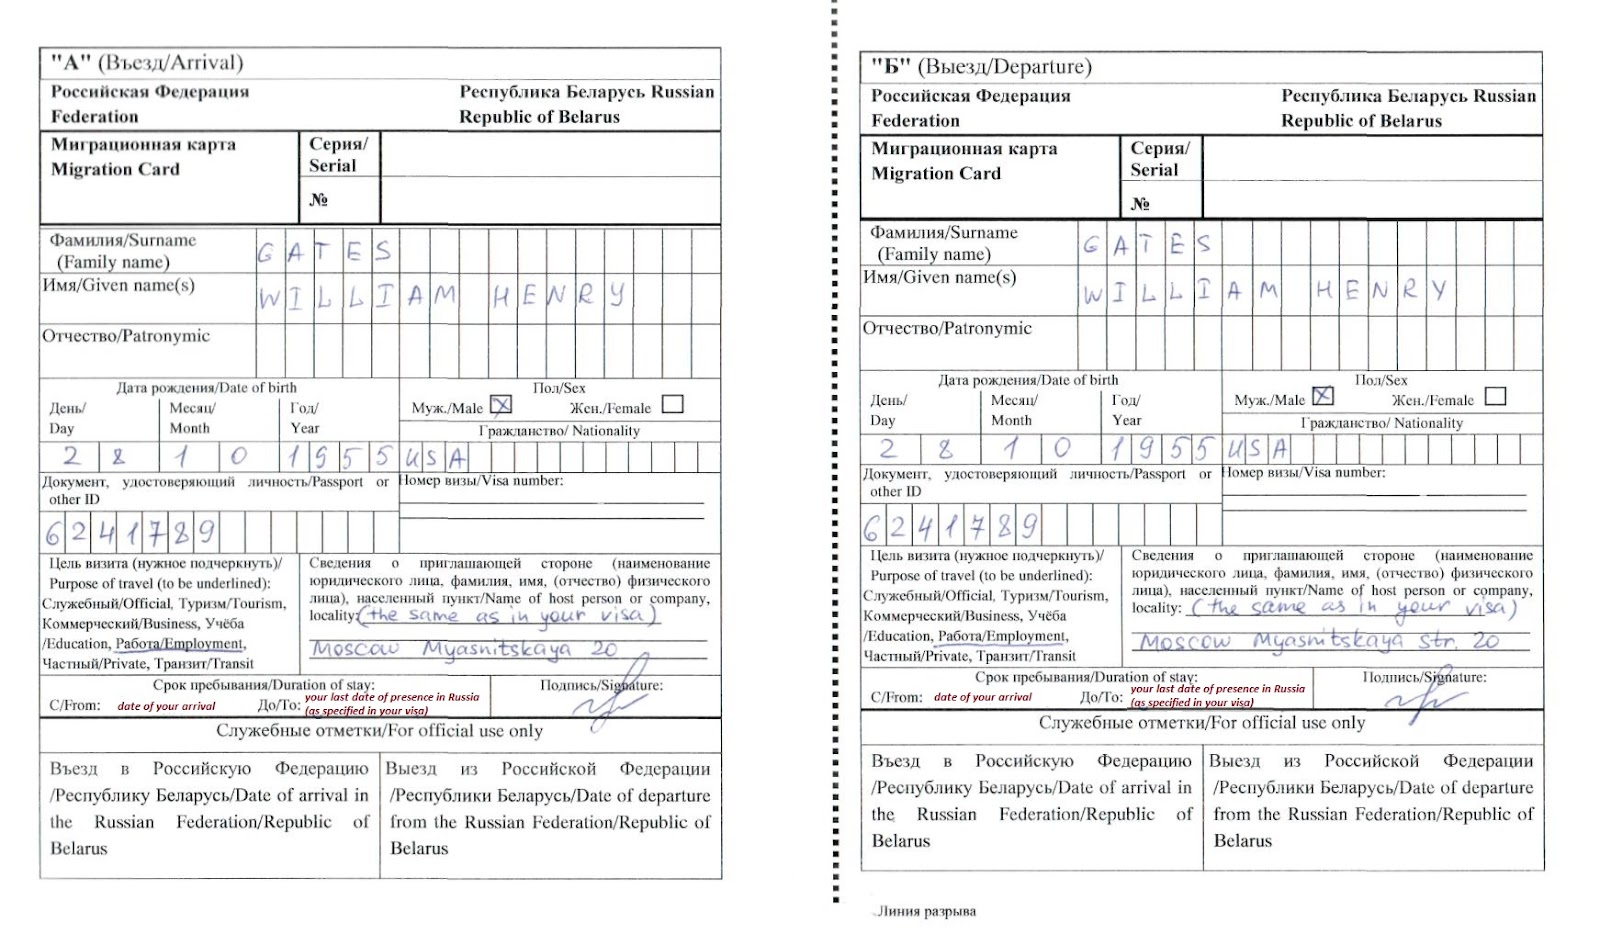 Russian migration card filled form